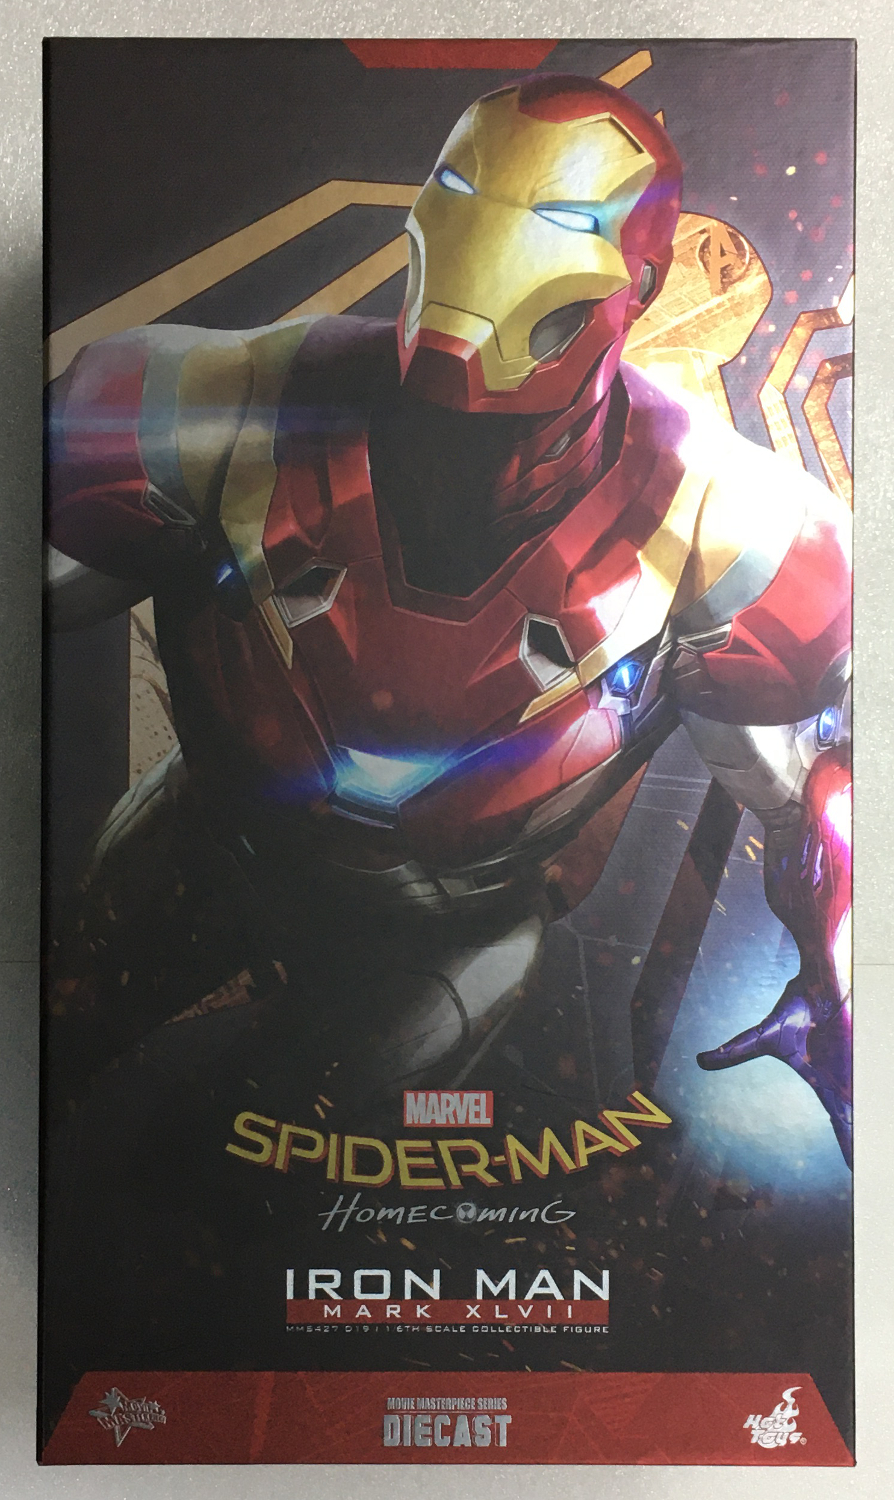 hot toys spider-man homecoming iron man mark xlvii 1:6 scale die cast figure 1